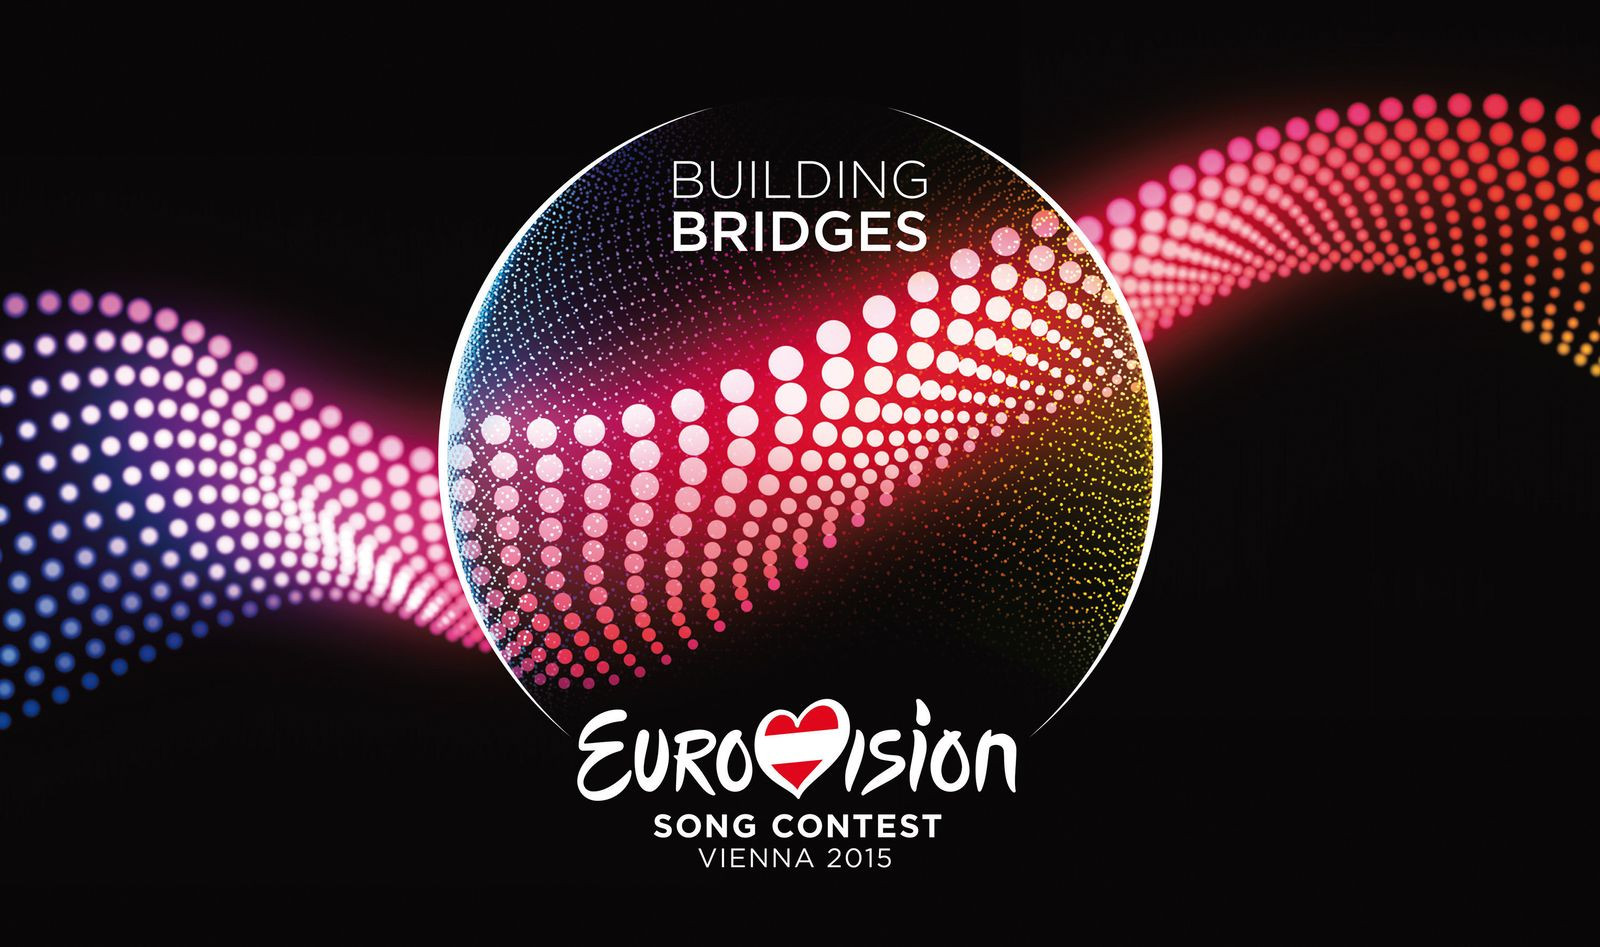 Eurovision Song Contest 2015